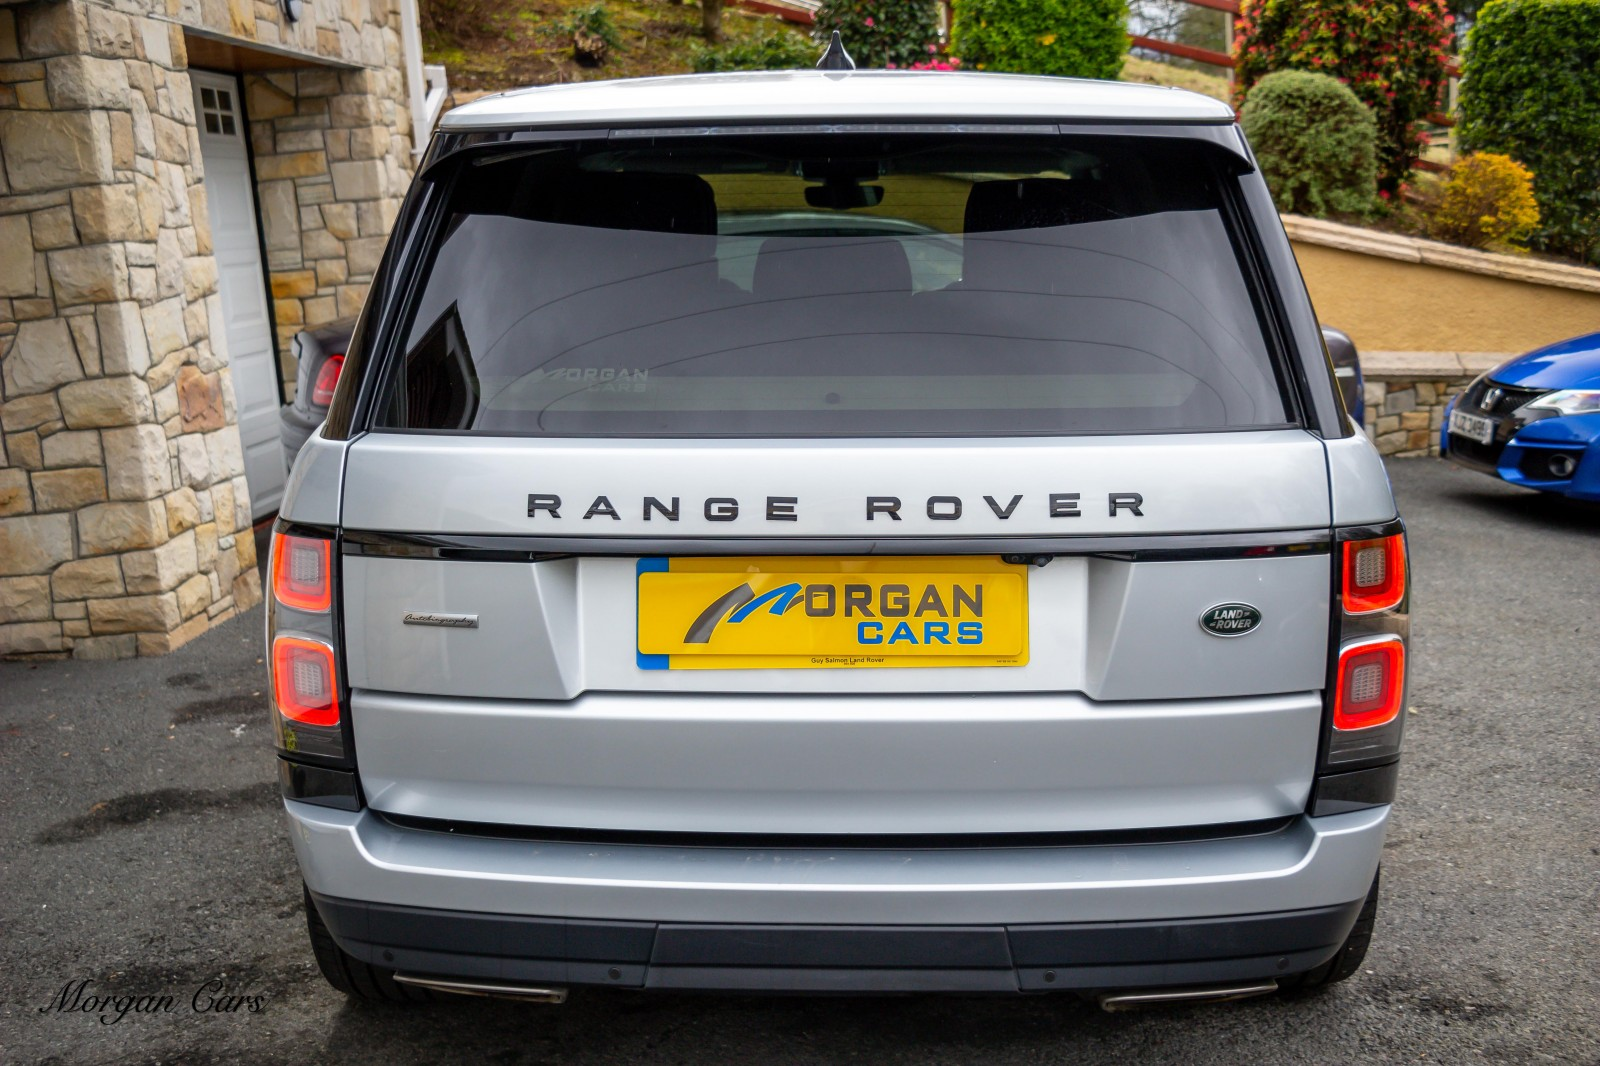 2018 Land Rover Range Rover 4.4 SDV8 AUTOBIOGRAPHY Diesel Automatic – Morgan Cars 9 Mound Road, Warrenpoint, Newry BT34 3LW, UK full